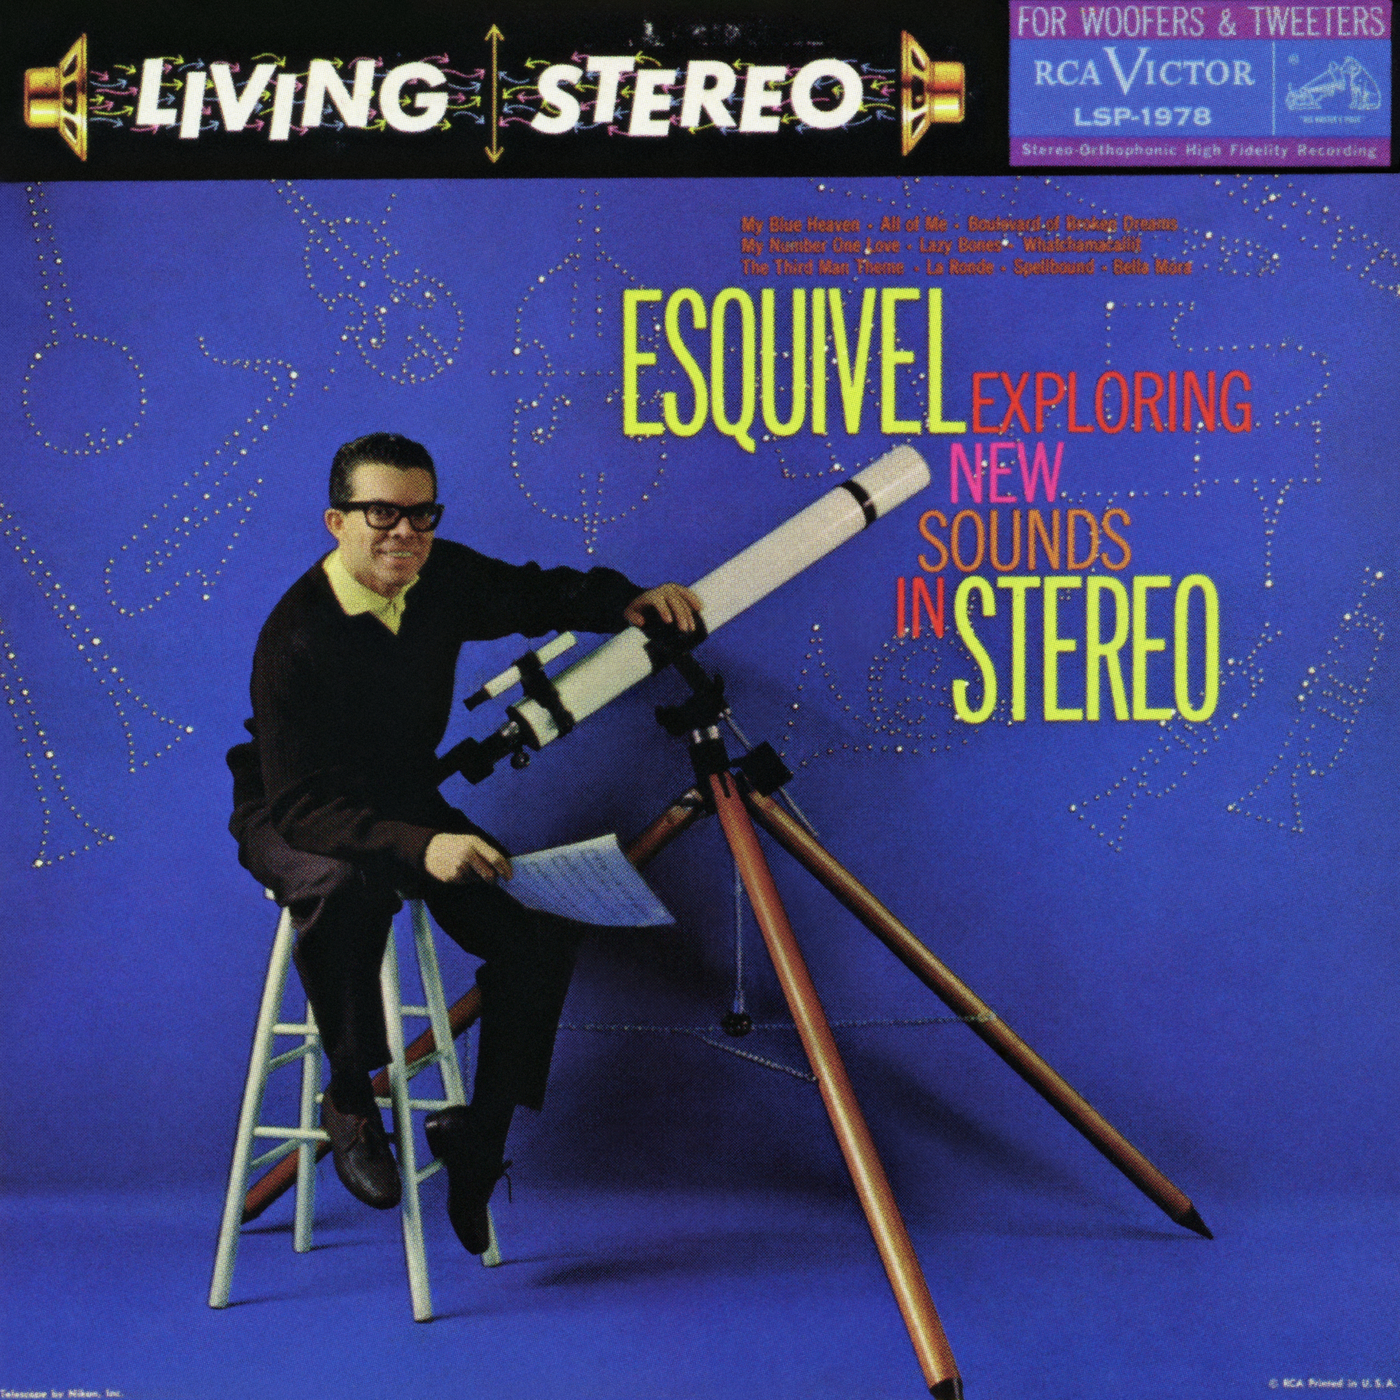 Exploring New Sounds In Stereo - Esquivel